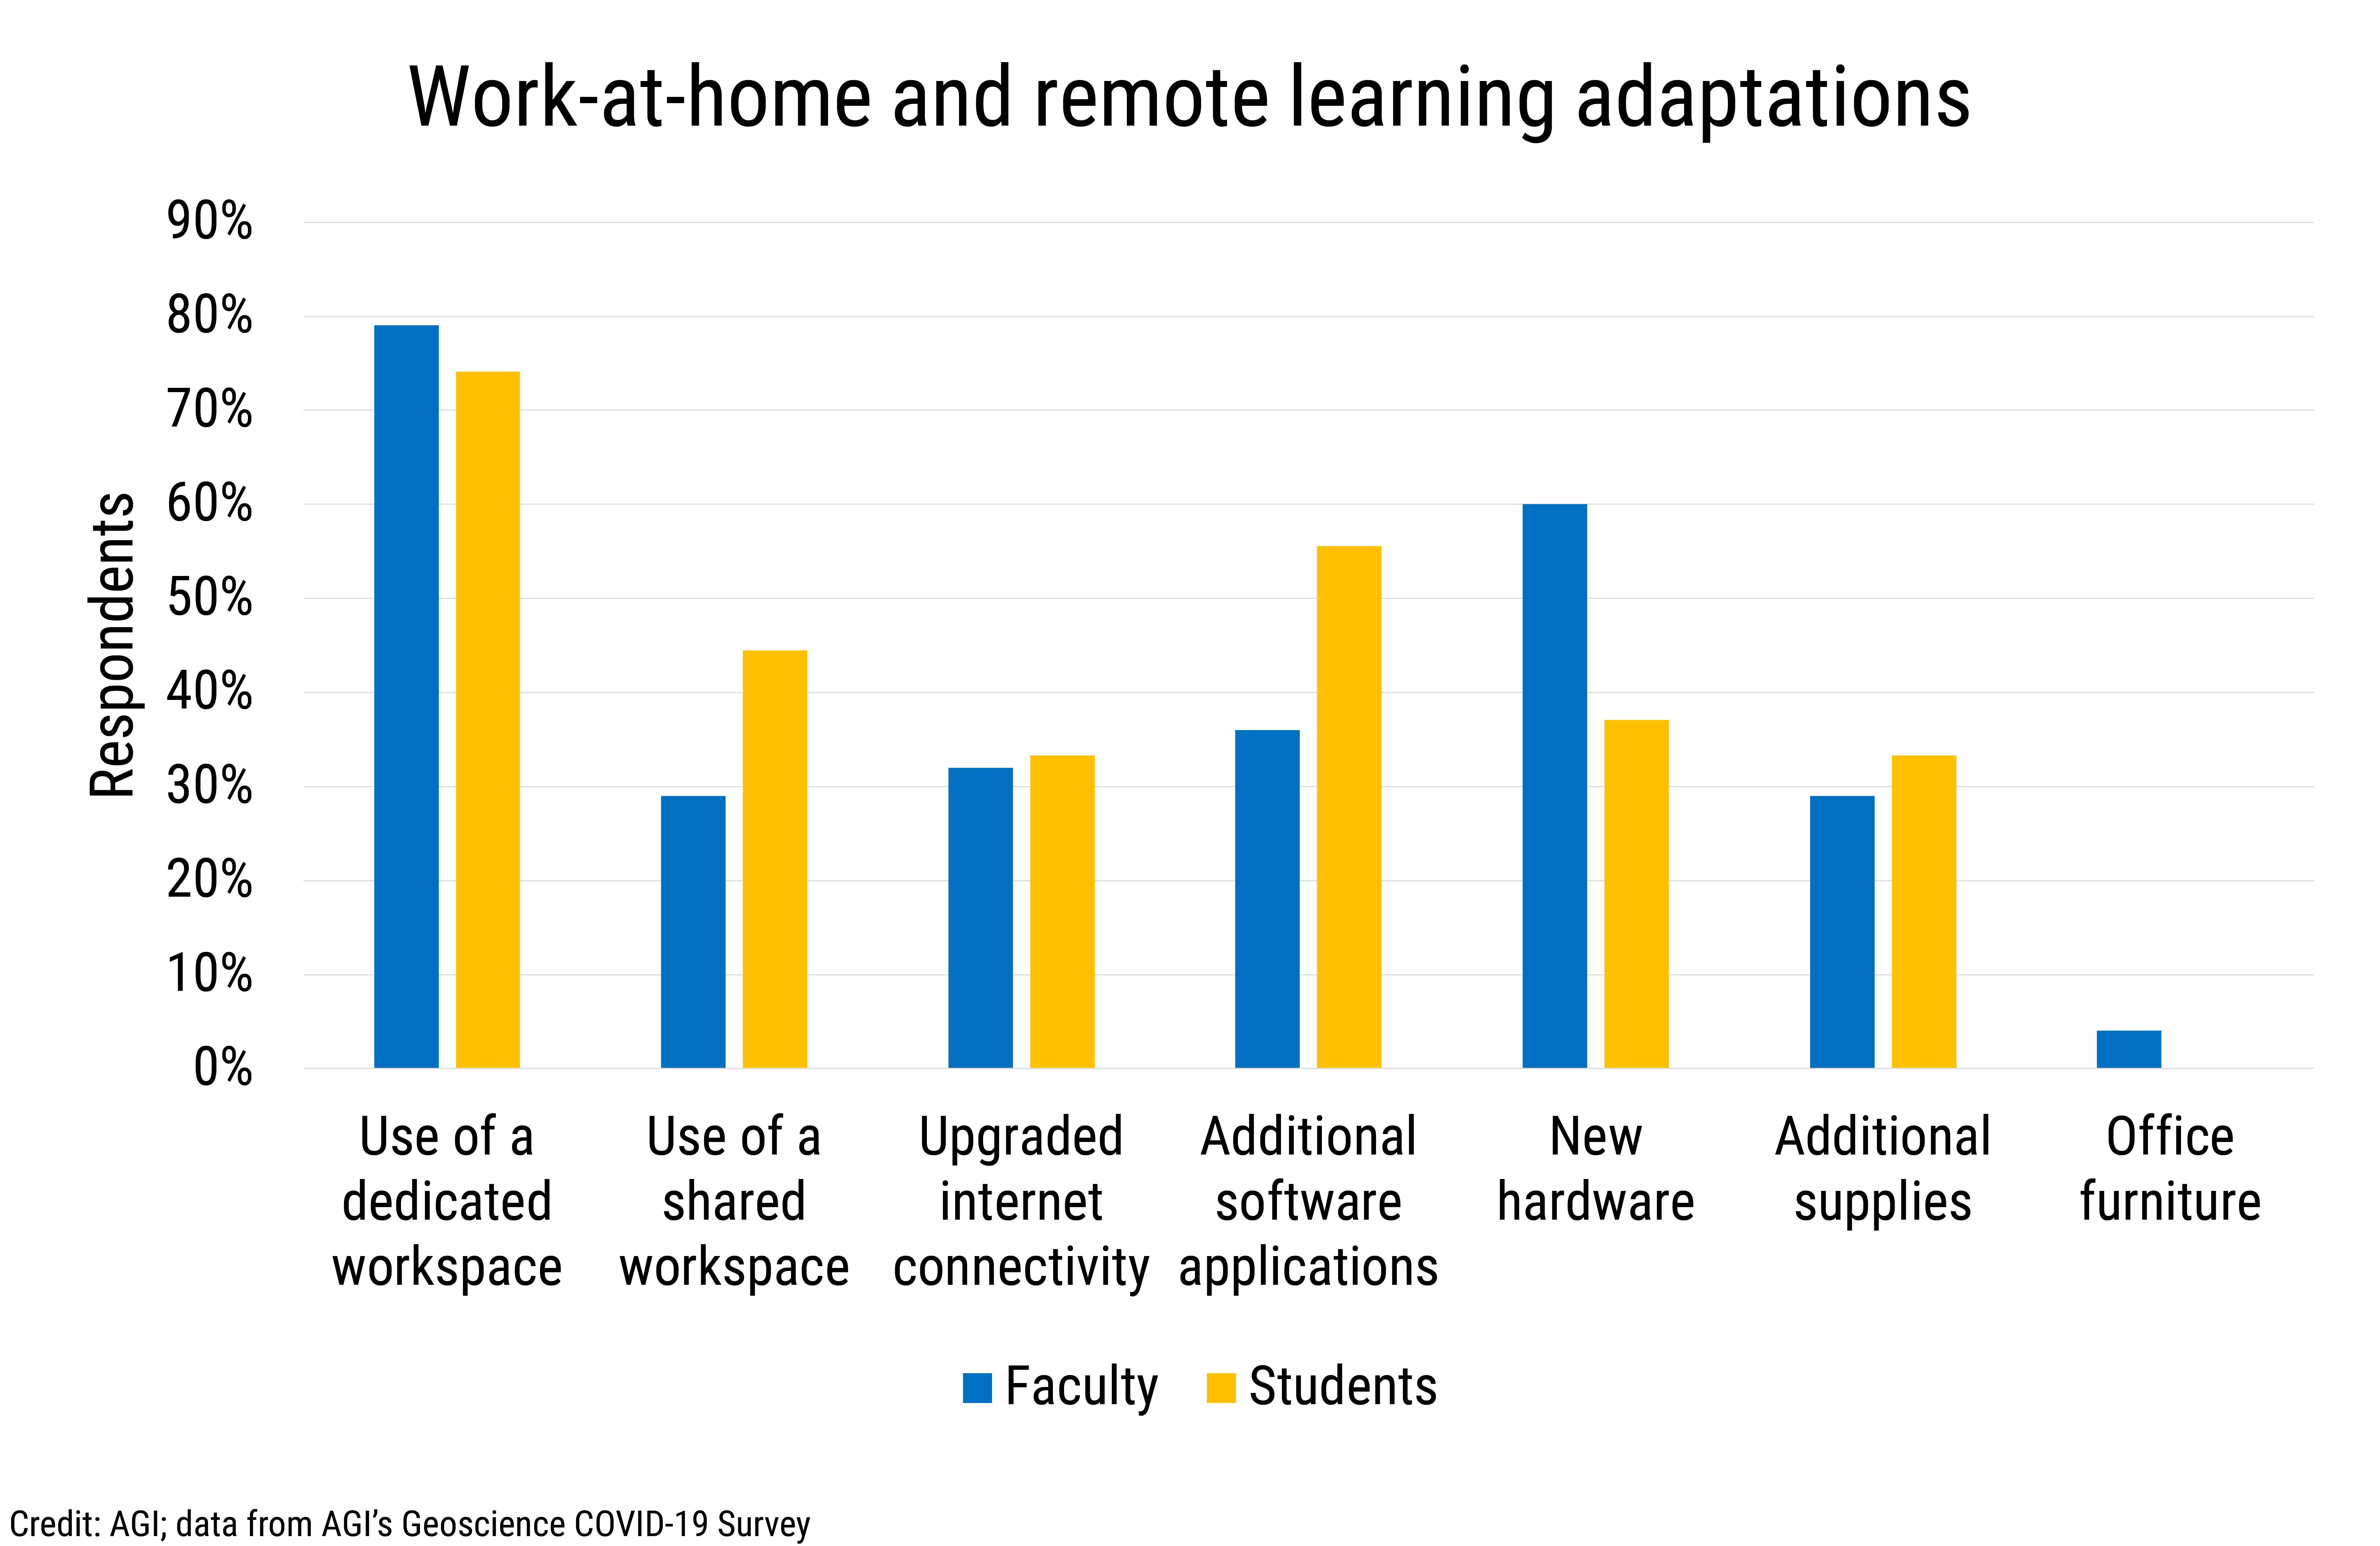 DB_2021-018 chart 01: Work-at-home and remote learning adaptations (Credit: AGI; data from AGI's Geoscience COVID-19 Survey)